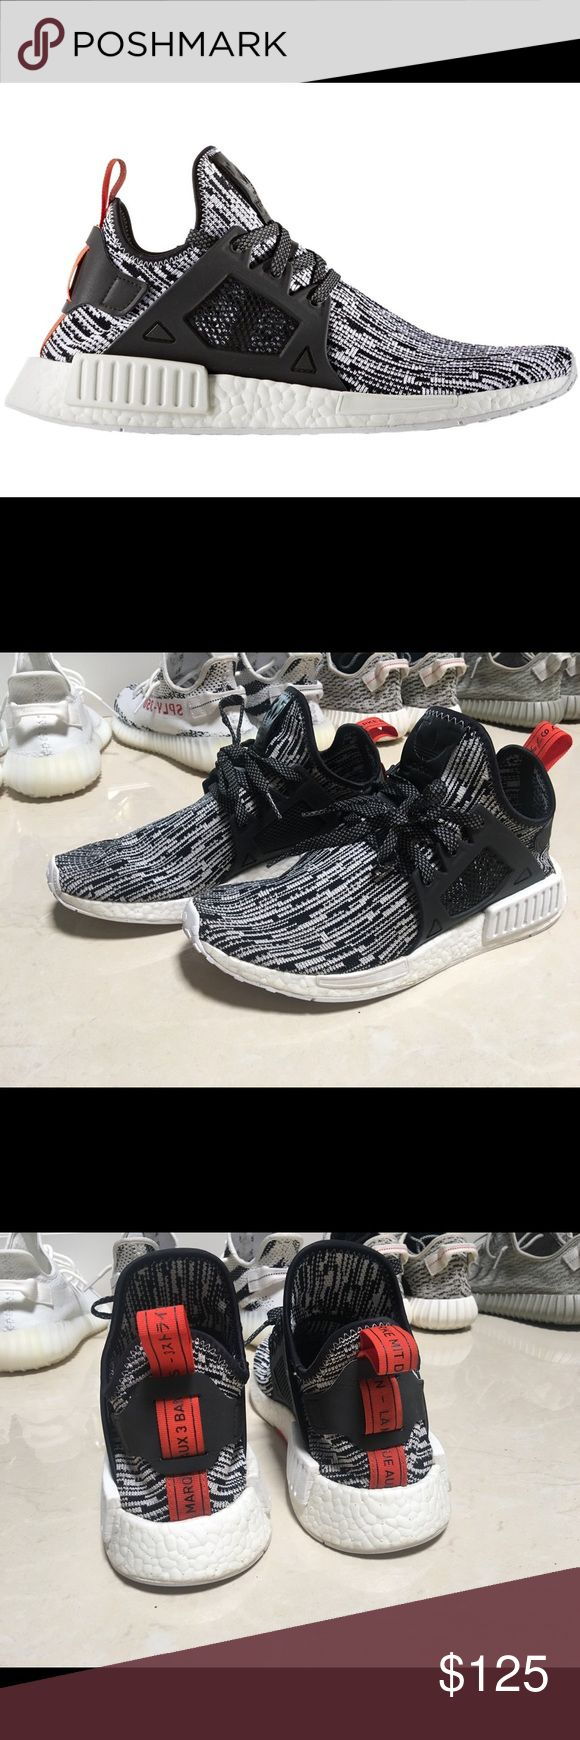 Adidas Nmd City Sock Black White Unisex Sports Offspring